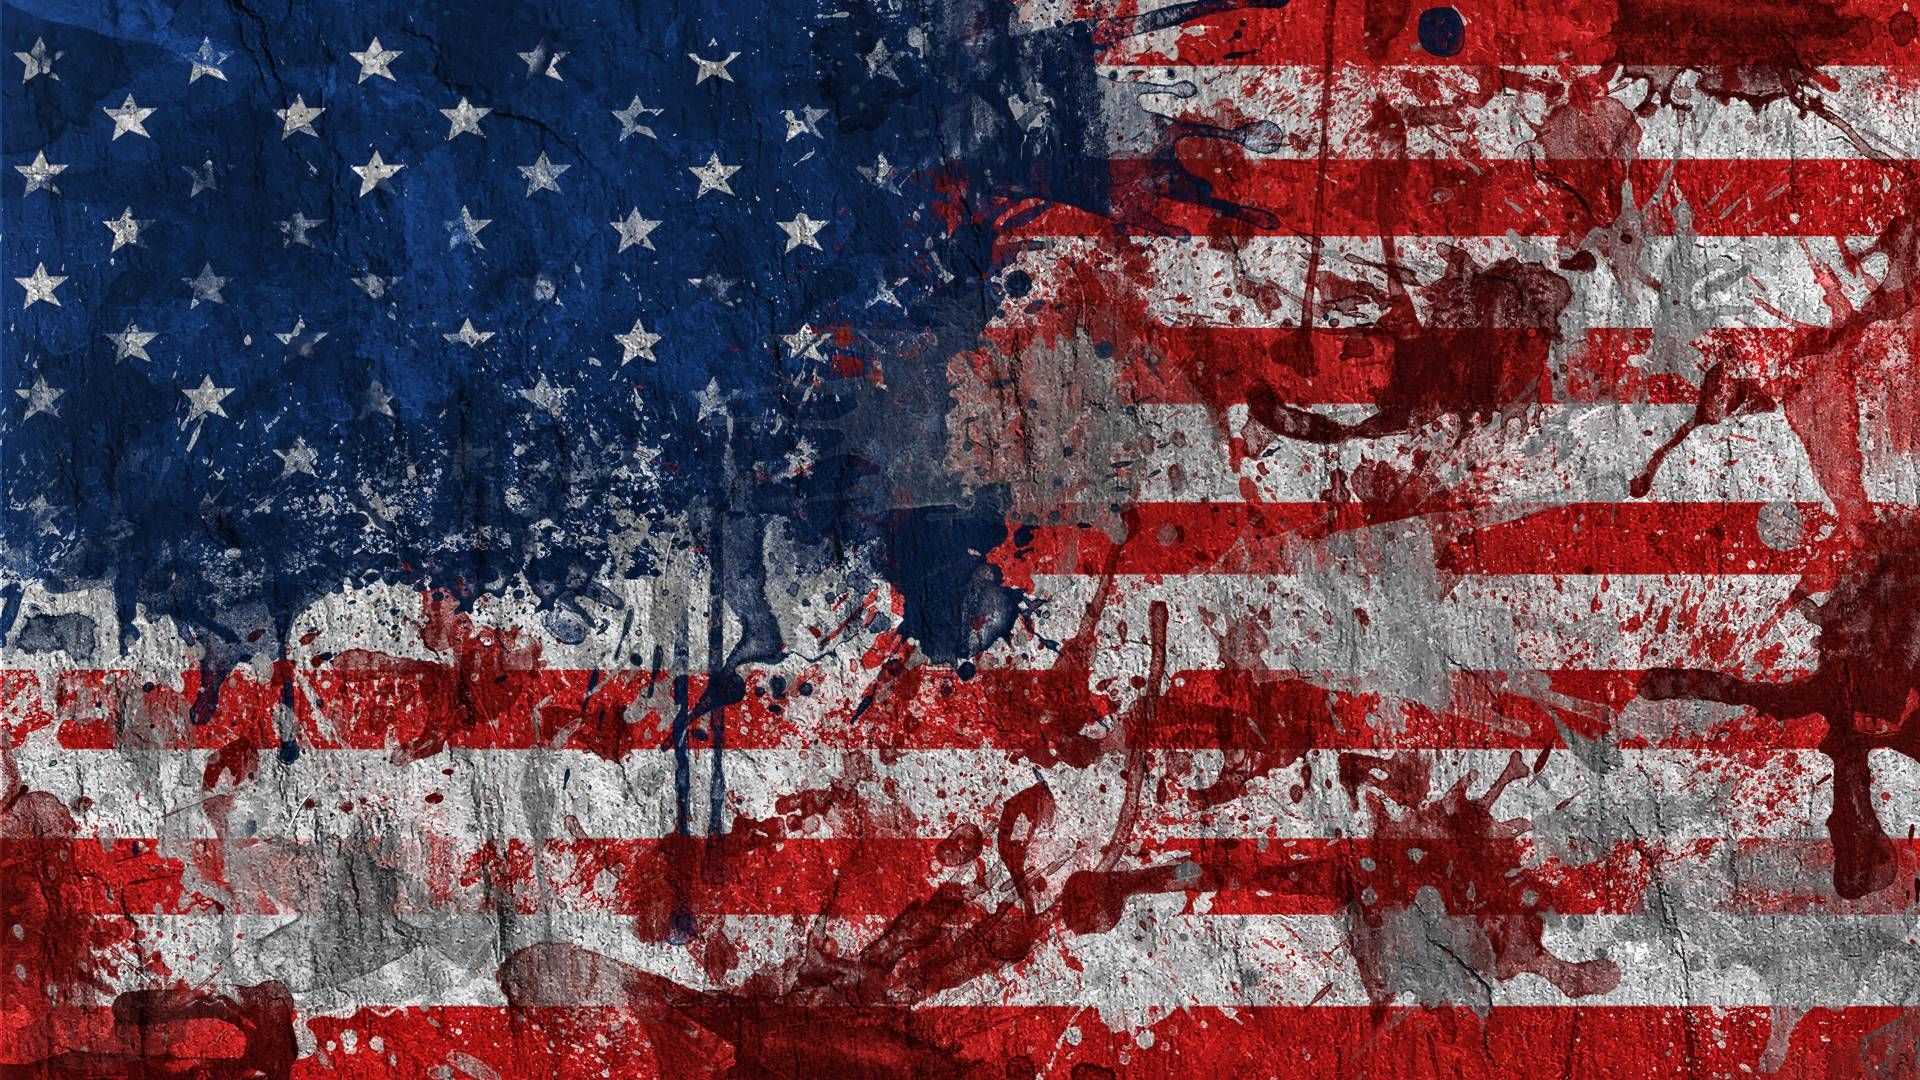 Usa Flag Wallpapers For Desktop In 2020 American Flag Wallpaper Usa Flag Wallpaper American Flag Pictures